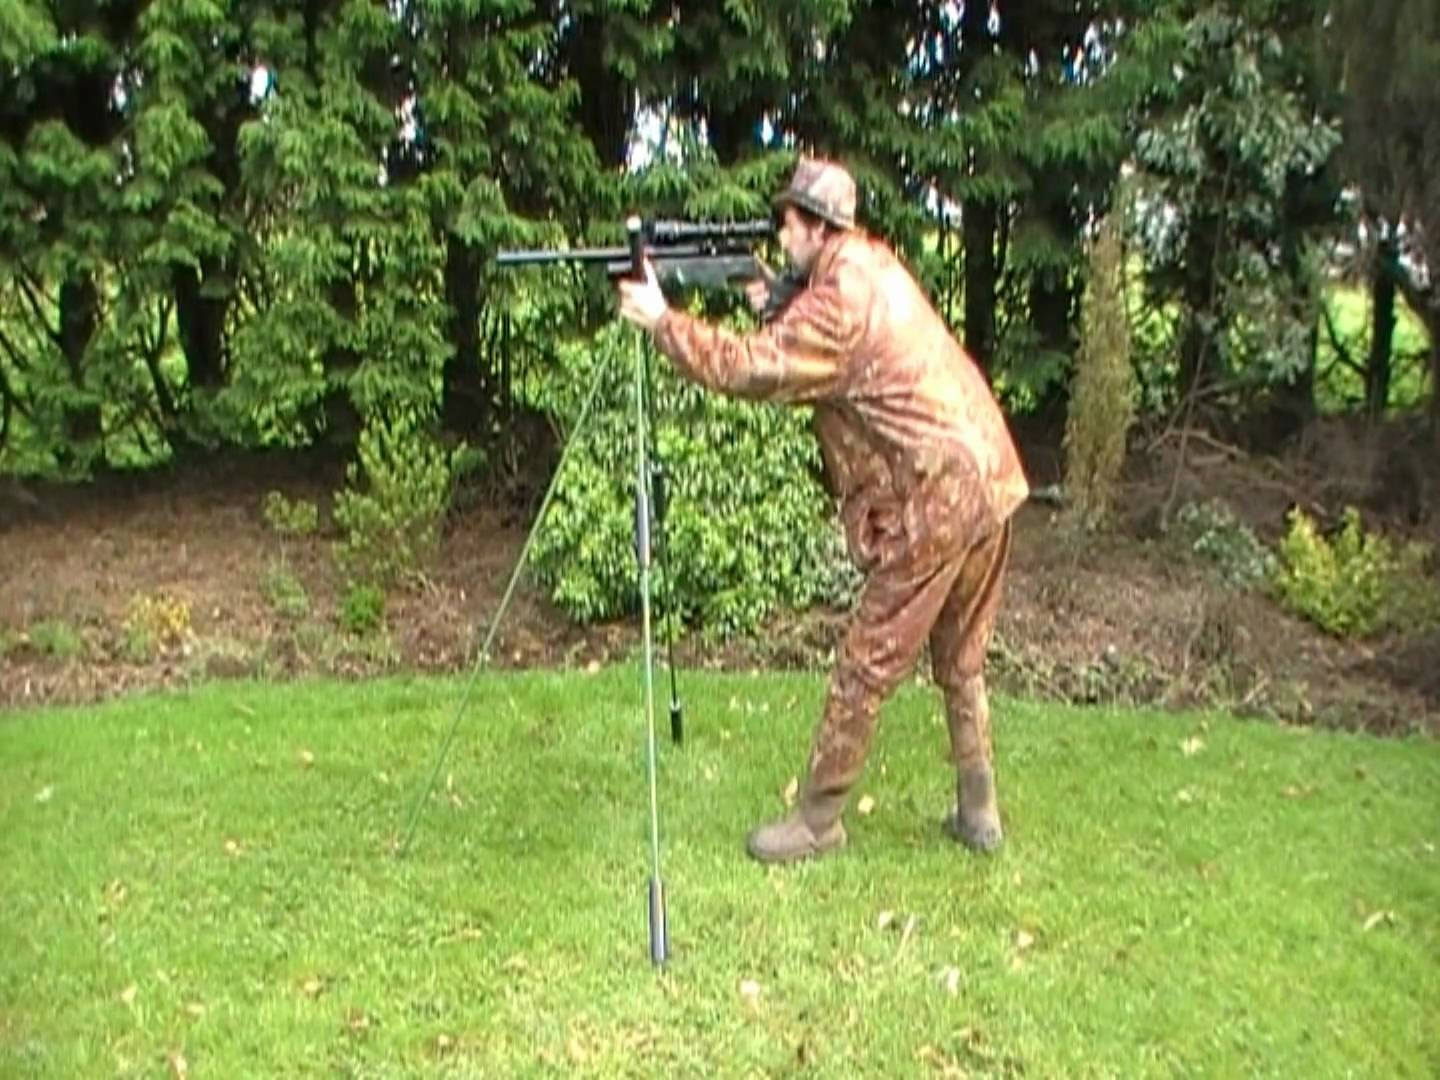 How To Make A Set Of Shooting Sticks, 2010